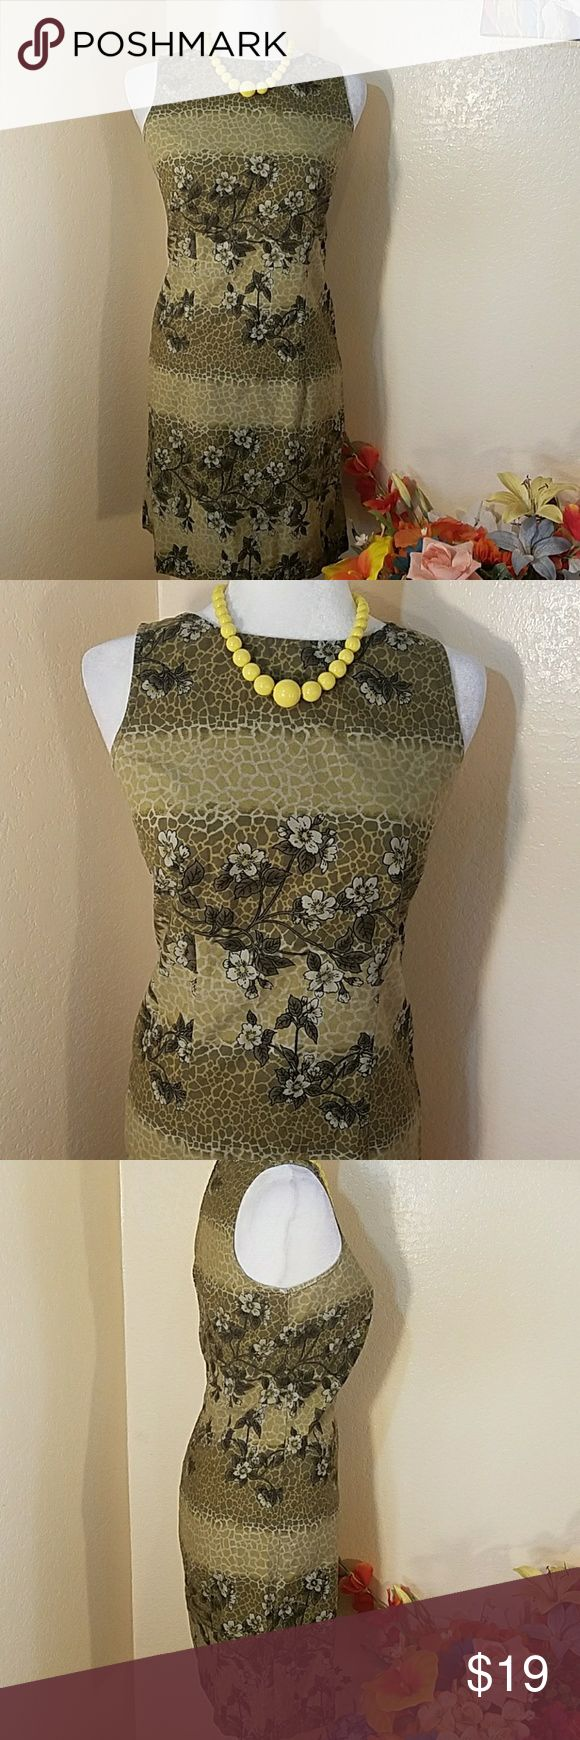 Gorgeous olive green dress by Route 66. Gorgeous olive green dress by Route 66. Armpit to armpit 17 in, way 716 in, shoulder to hemline 35 in, size medium, hundred percent sign cotton, excellent condition Route 66 Dresses Midi